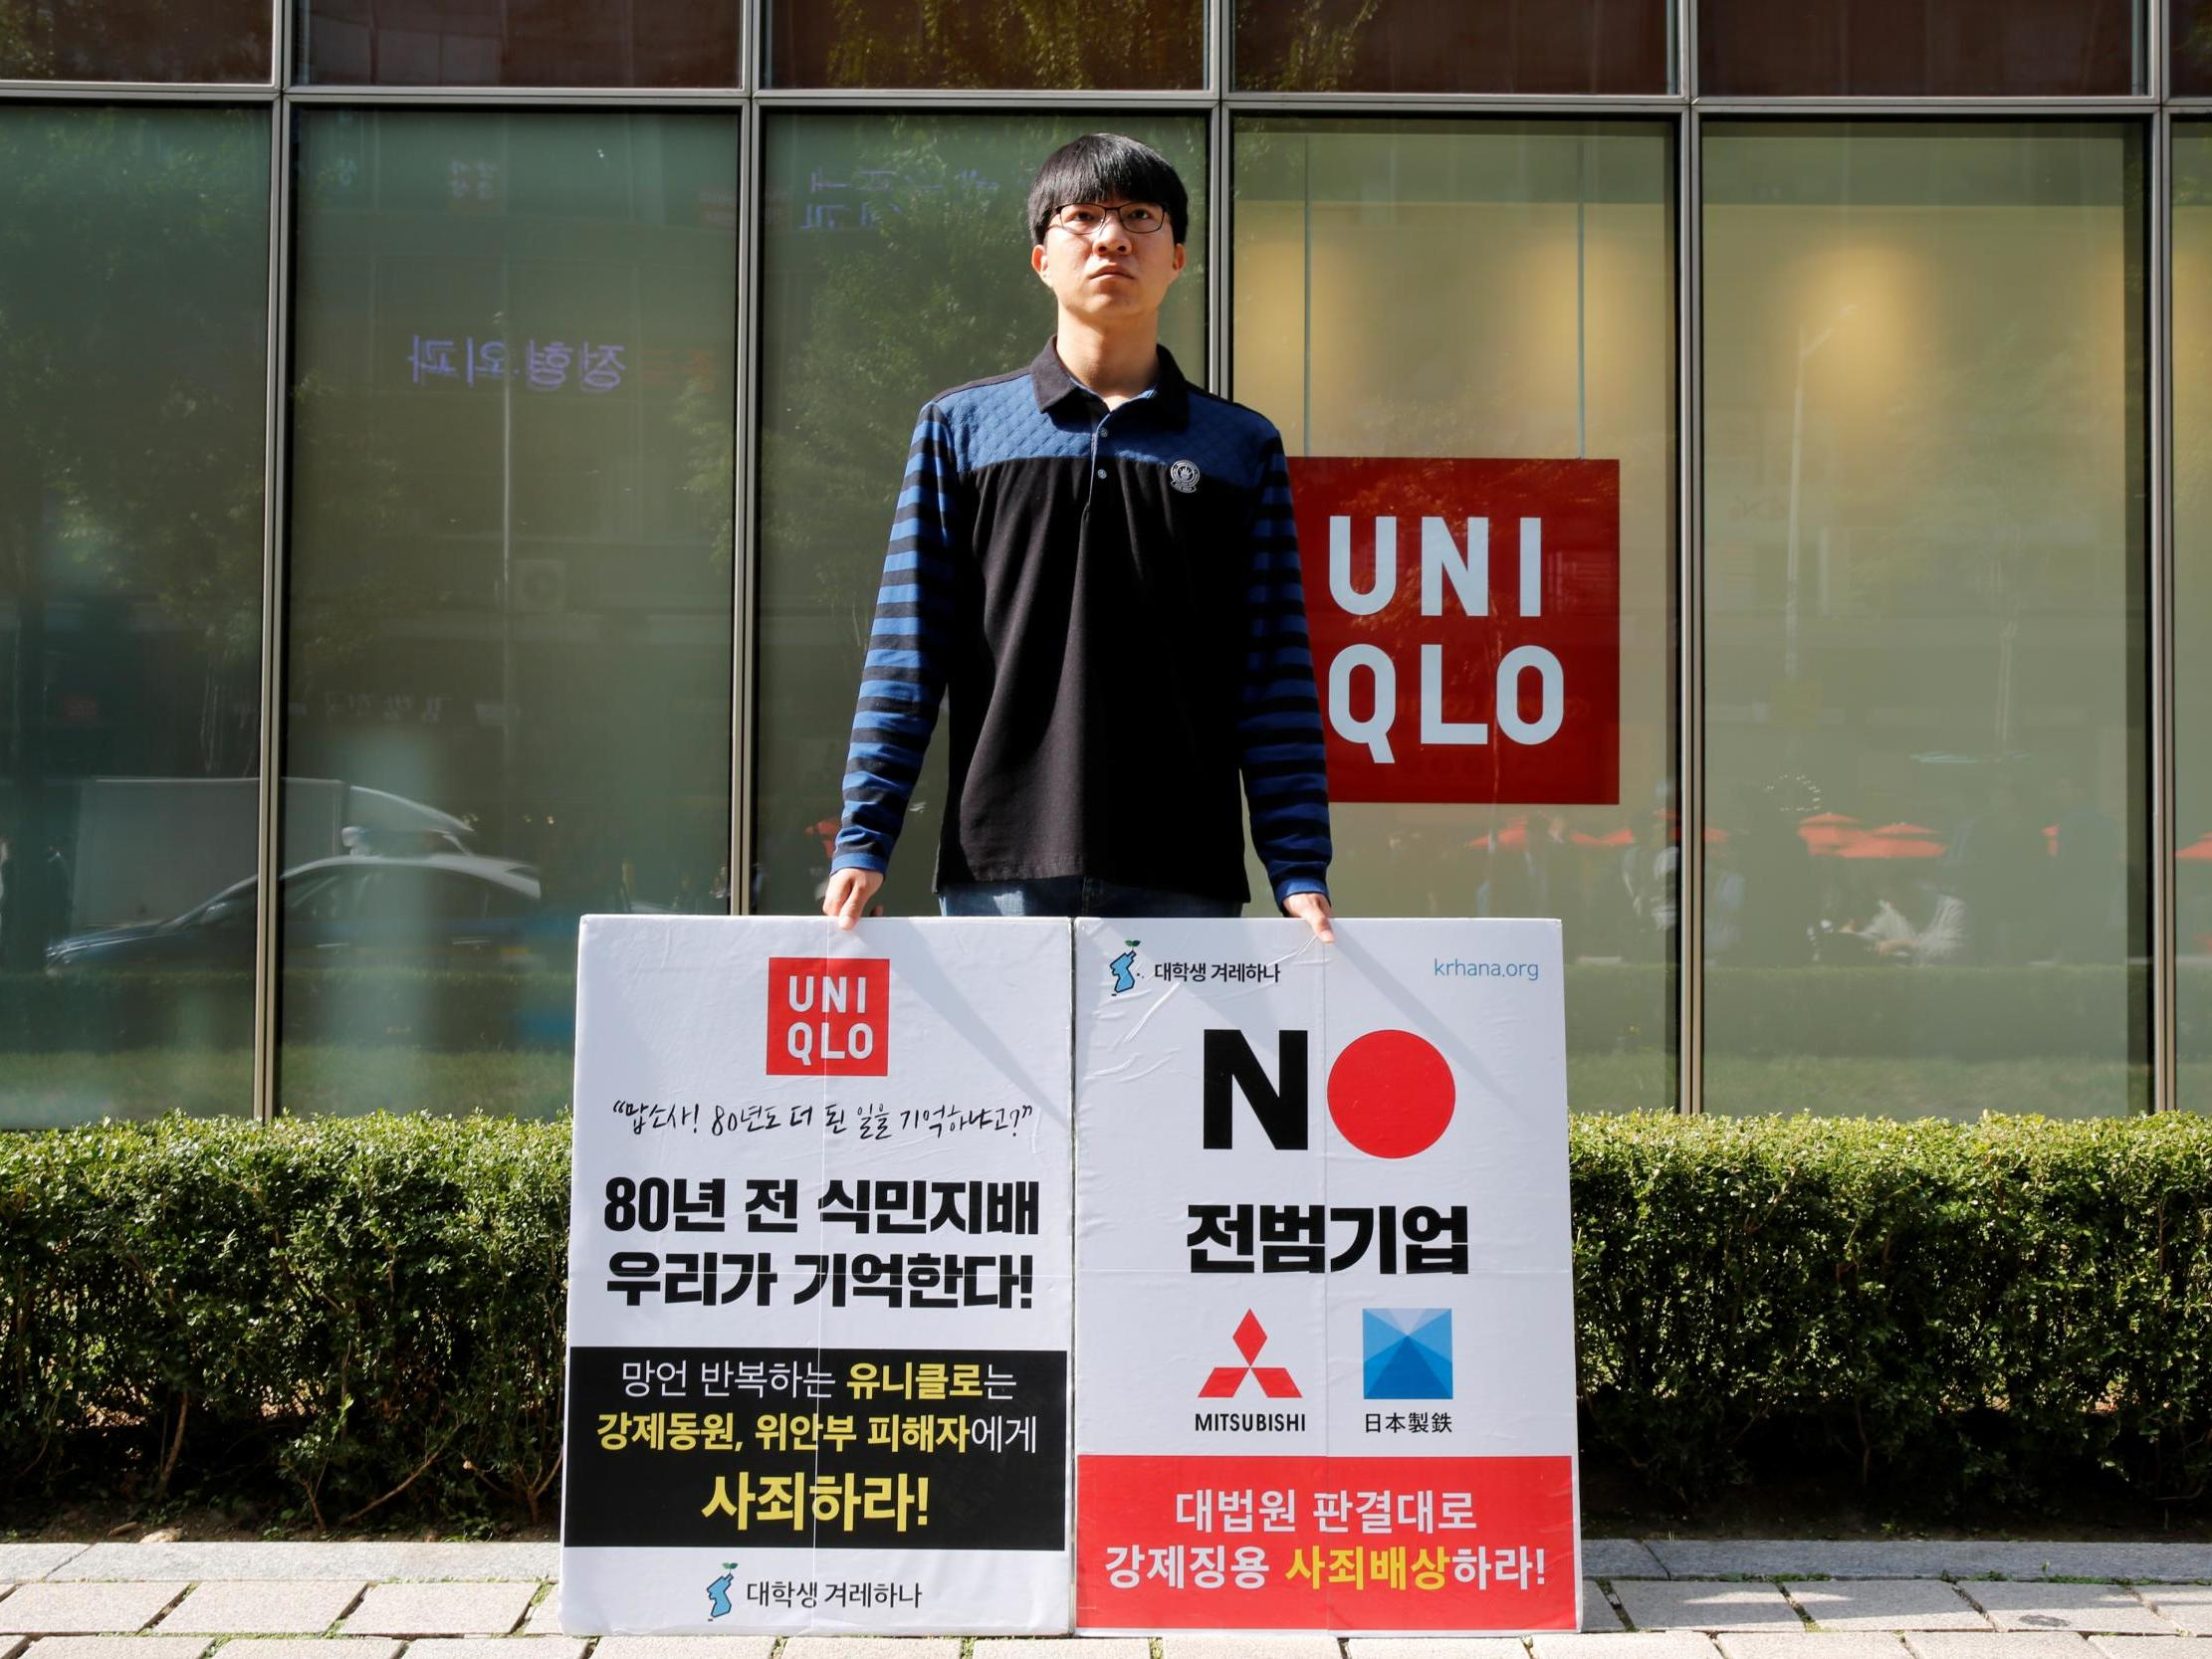 Uniqlo pulls advert from South Korea after mistranslation seems to mock sexual slavery victims